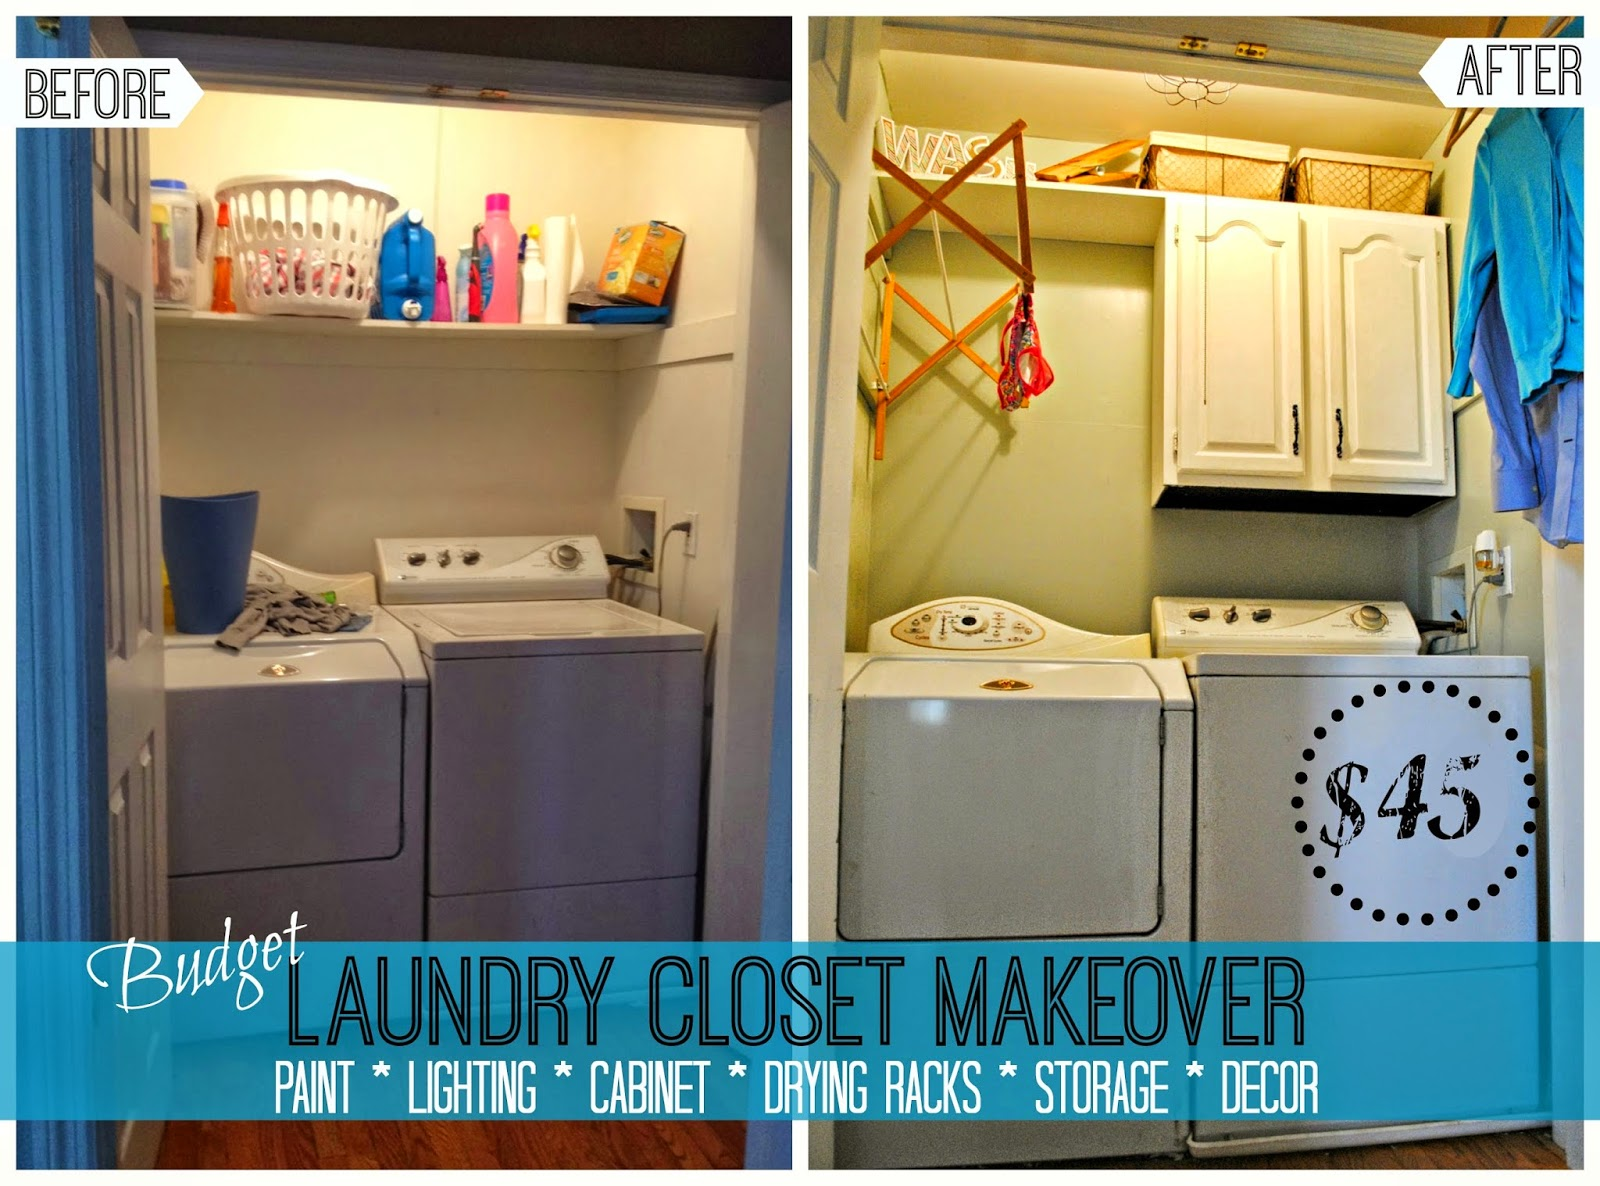 The Good News Is The Laundry Room/closet Makeover Is Complete. The Bad News  Is The Washer Decided To Conk Out Completely About 3.2 Seconds After ...